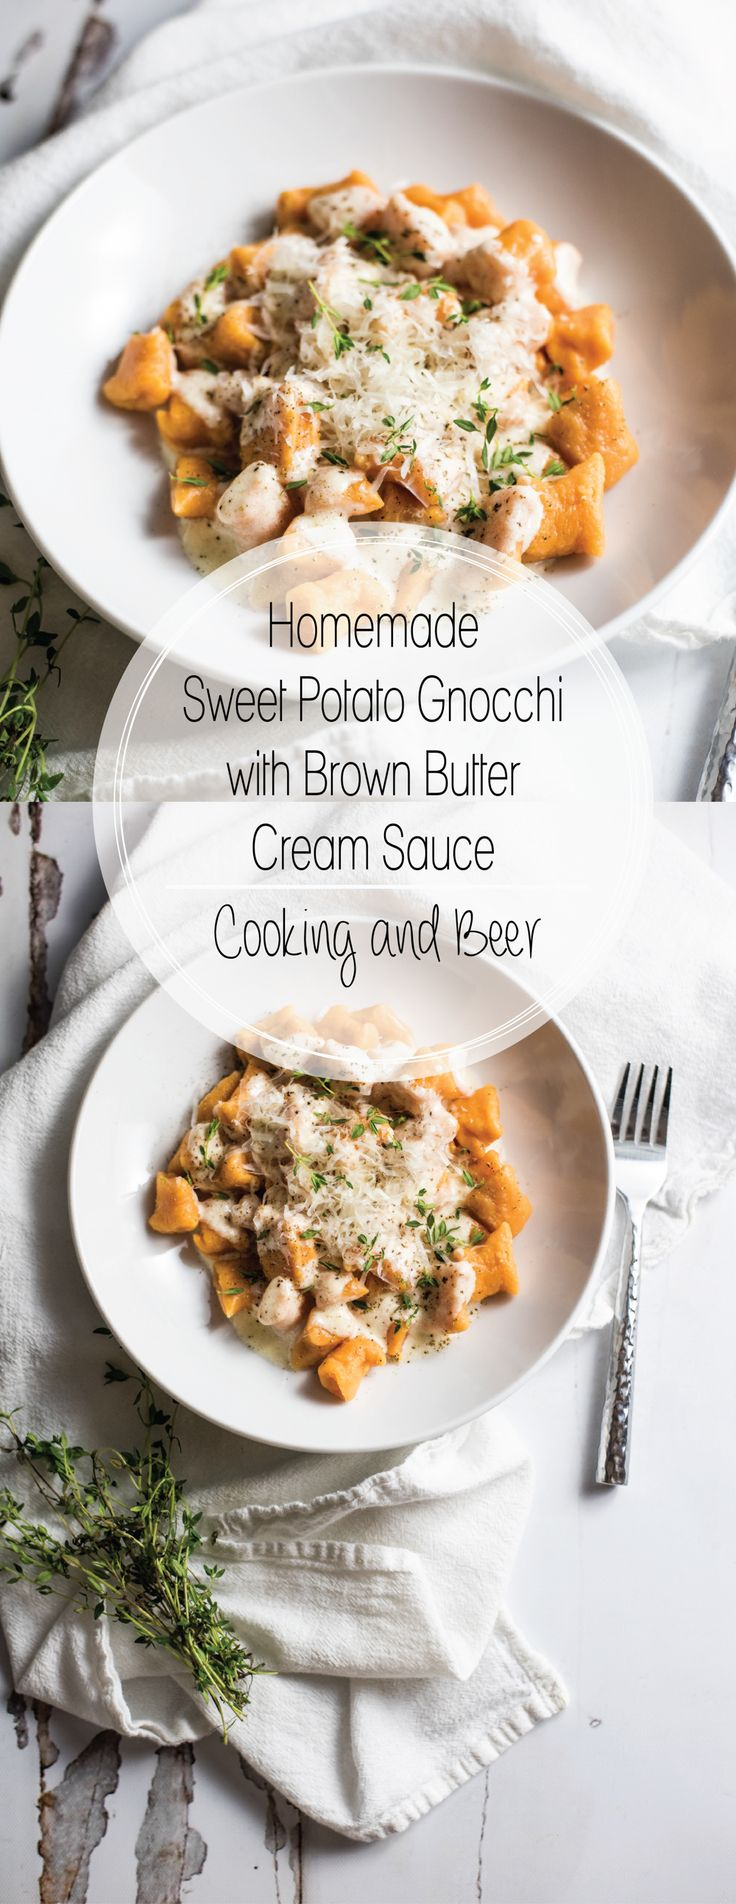 Homemade sweet potato gnocchi in brown butter cream sauce is much simpler to make than you think! It is super delicious and loaded with flavor and texture!